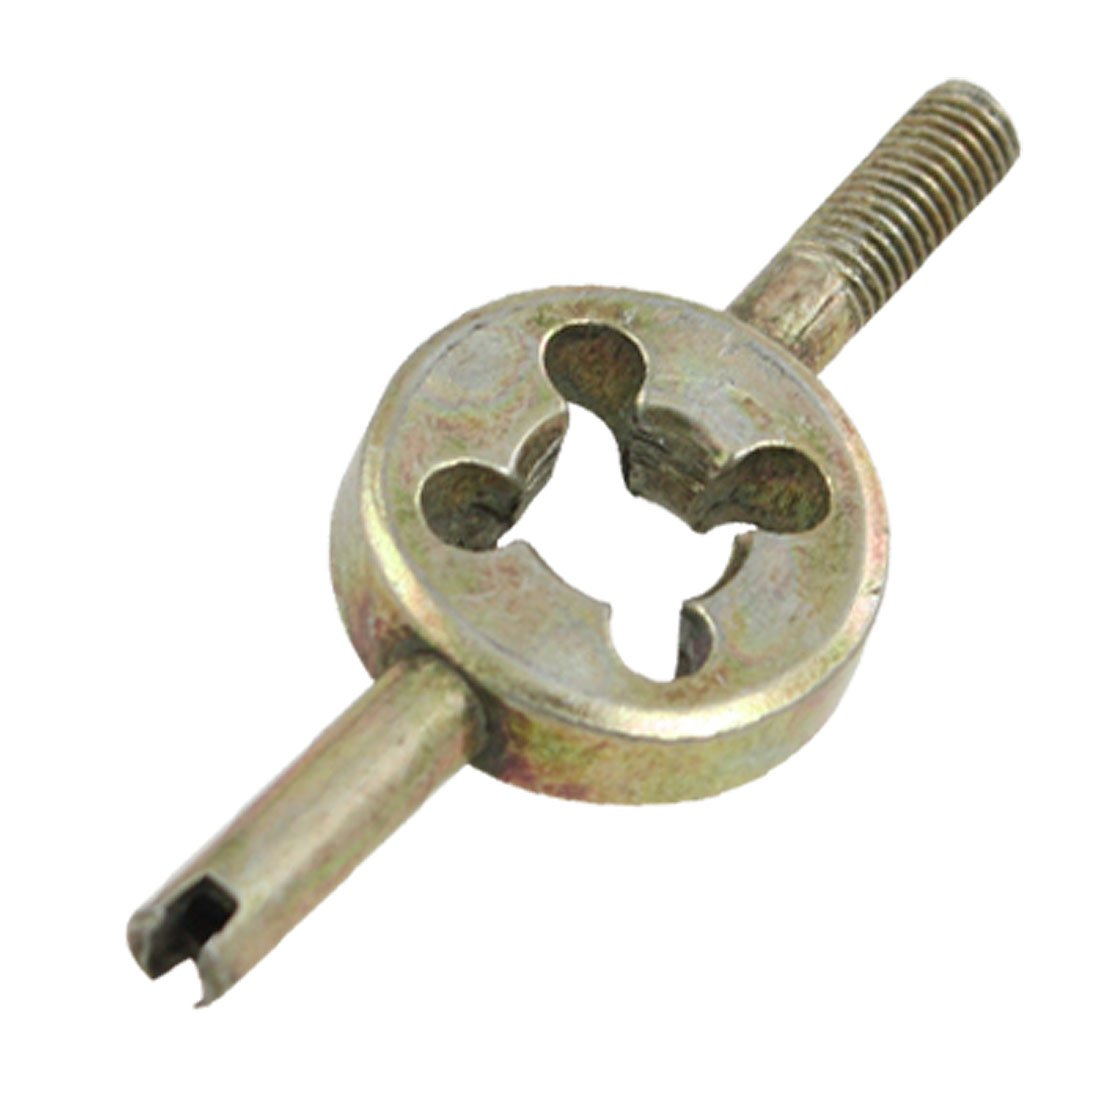 4mm Thread End Bicycle Tire Valve Core Wrench Spanner Repair Tool